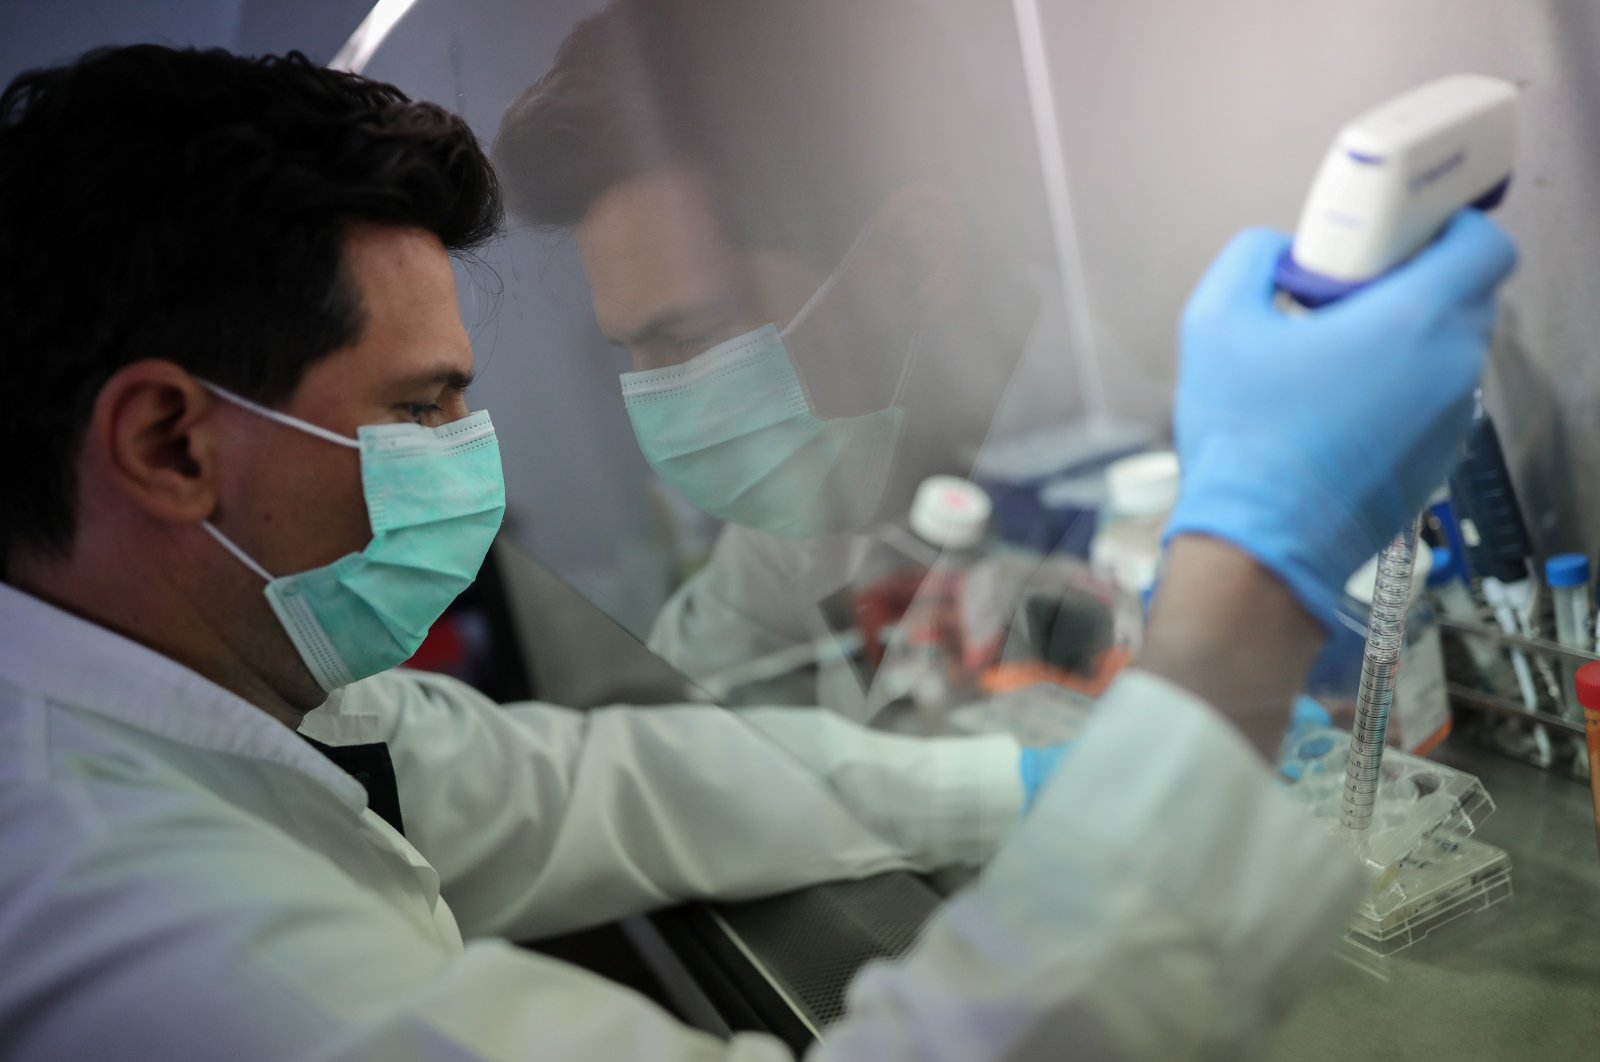 A scientist works on cells that produce antibodies against COVID-19 in a university lab in Athens, Greece, July 8, 2020. (Reuters Photo)